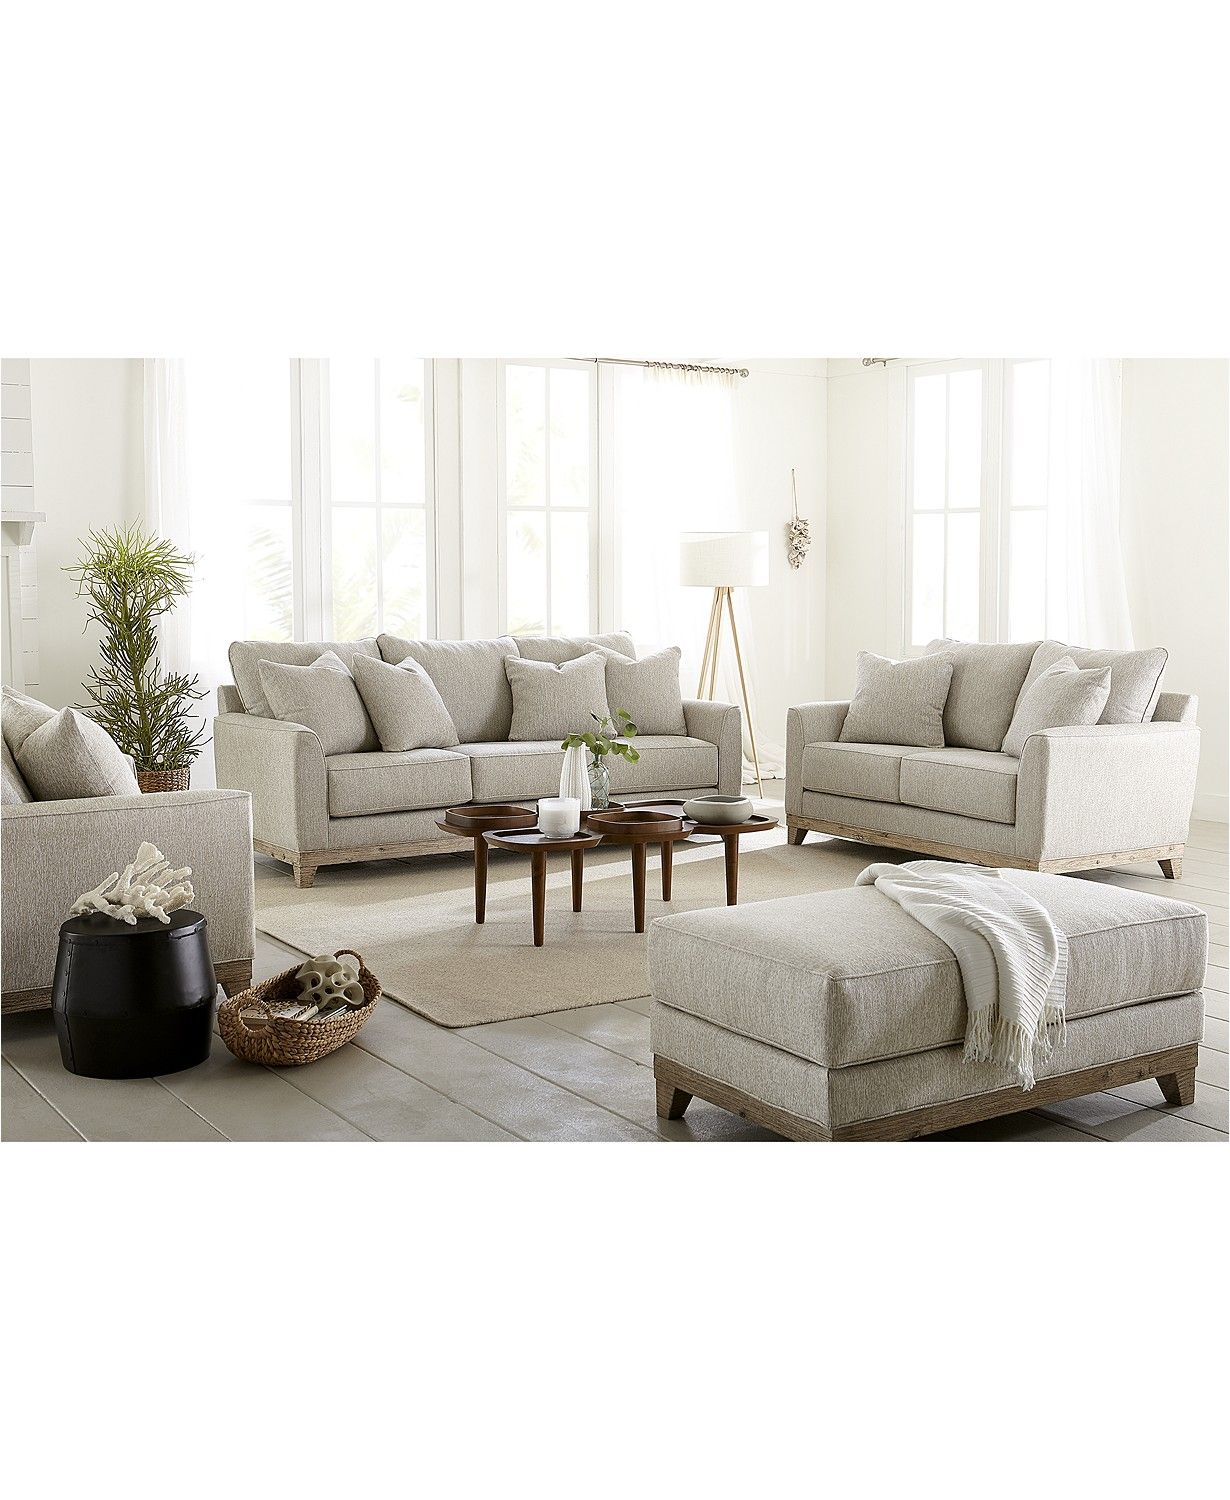 Furniture Brackley 94 Fabric Sofa Created For Macy S Reviews